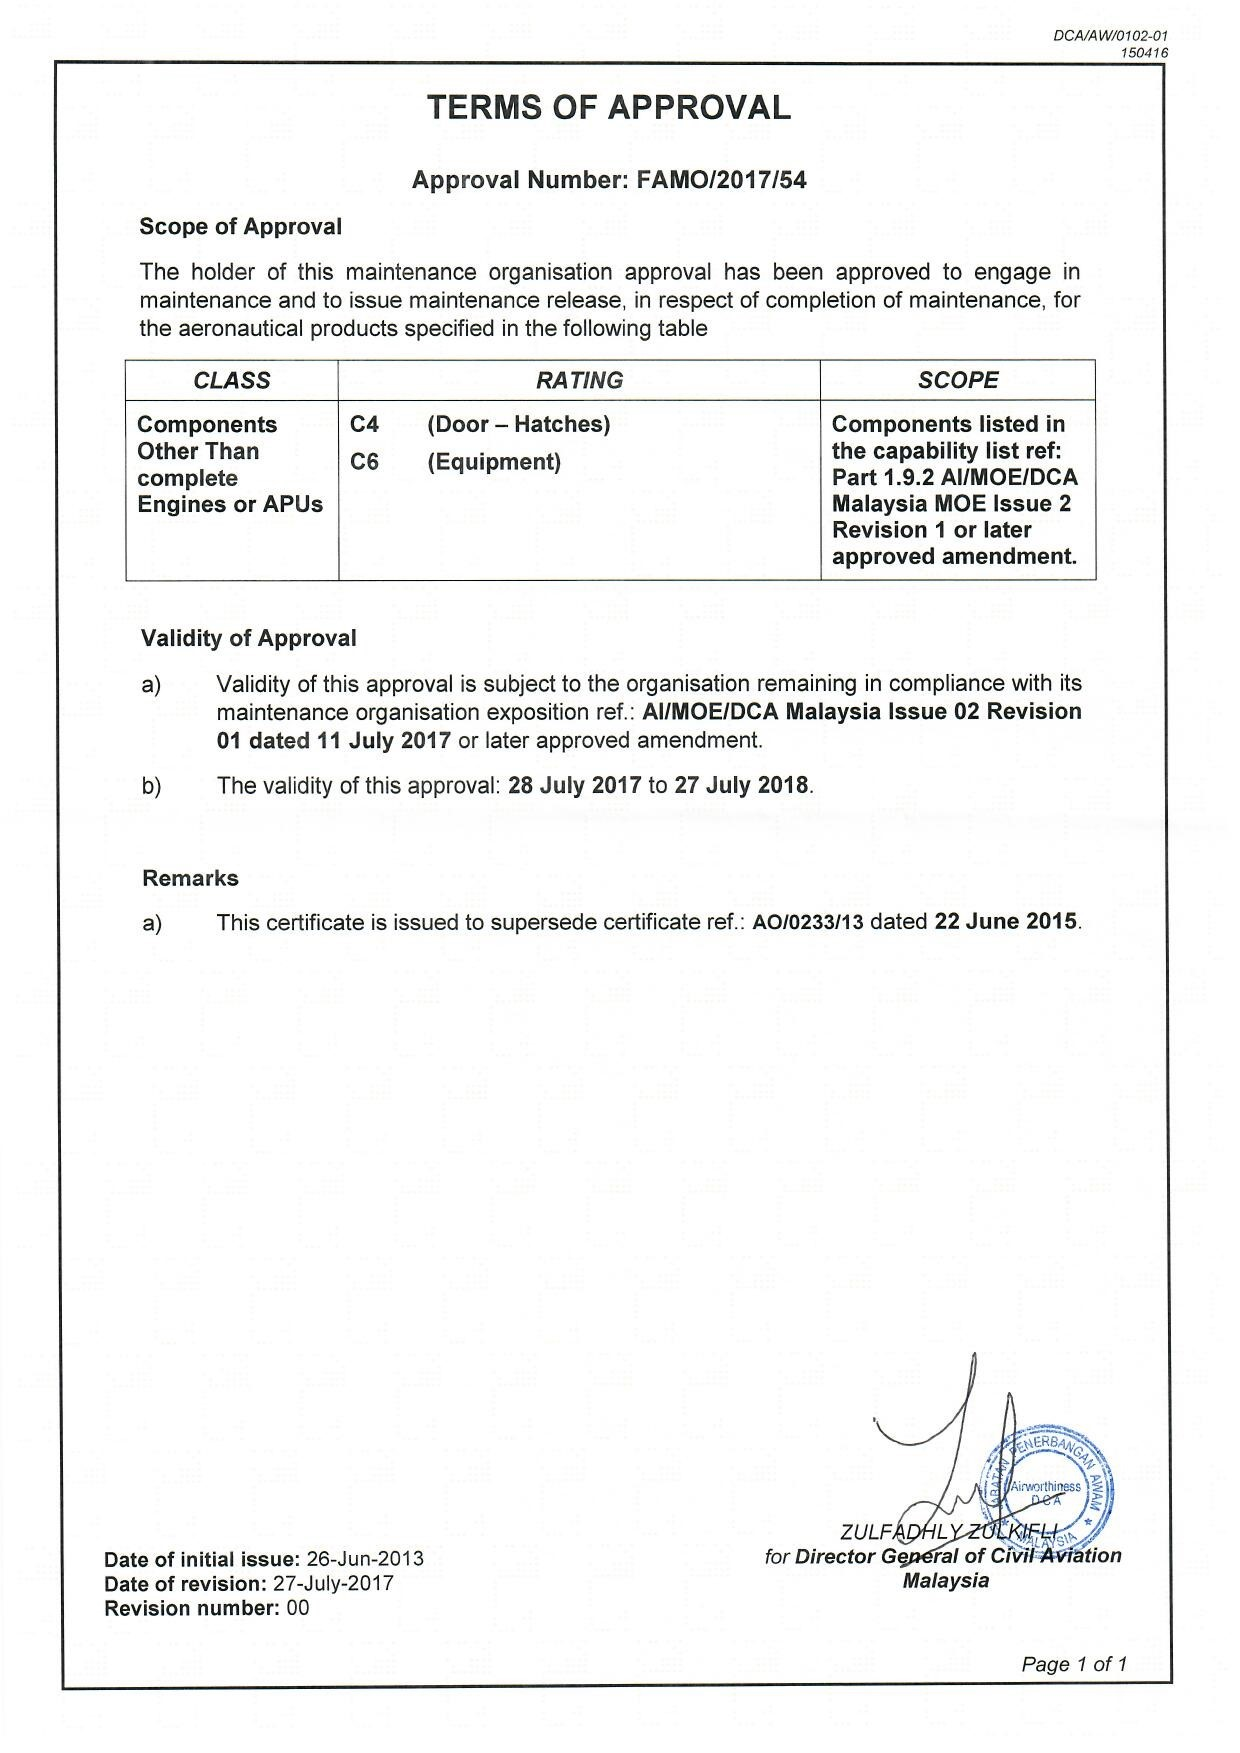 DCAM 145 Approval Certificate -2